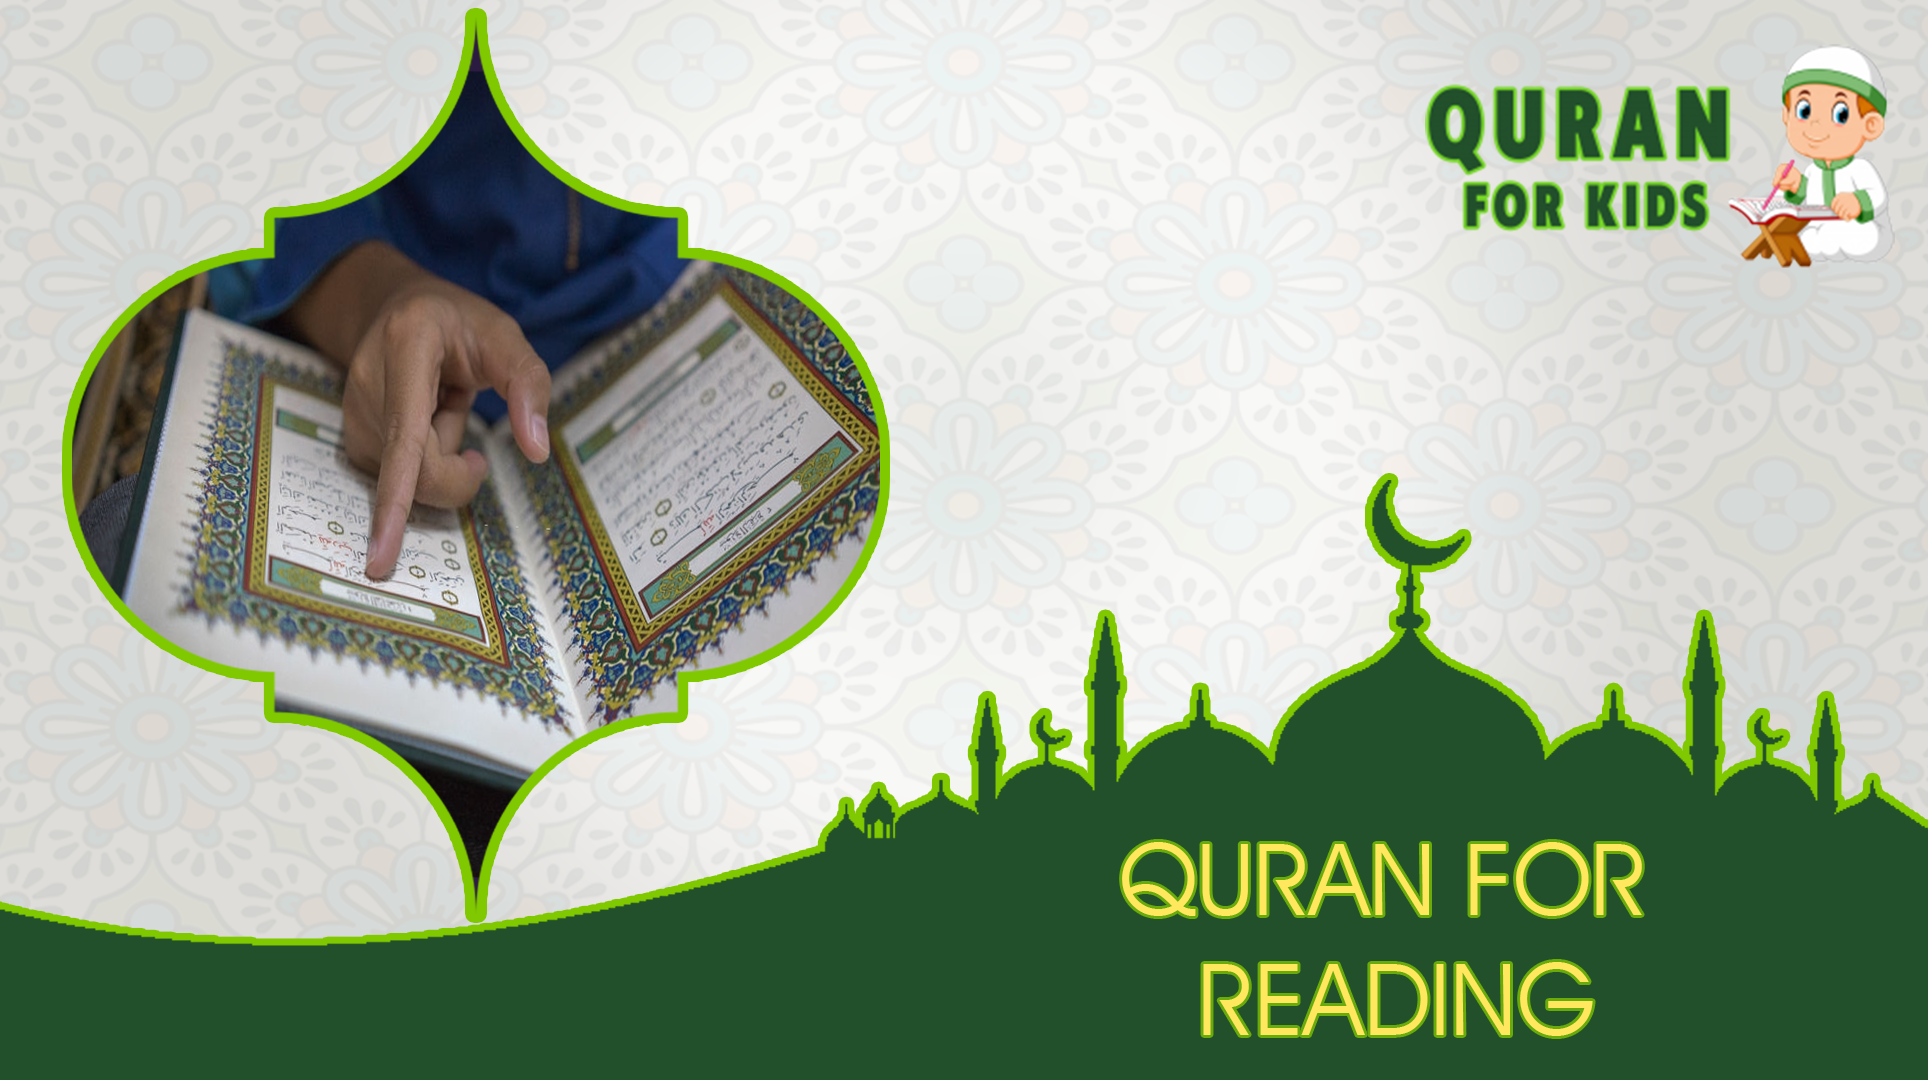 Quran for reading